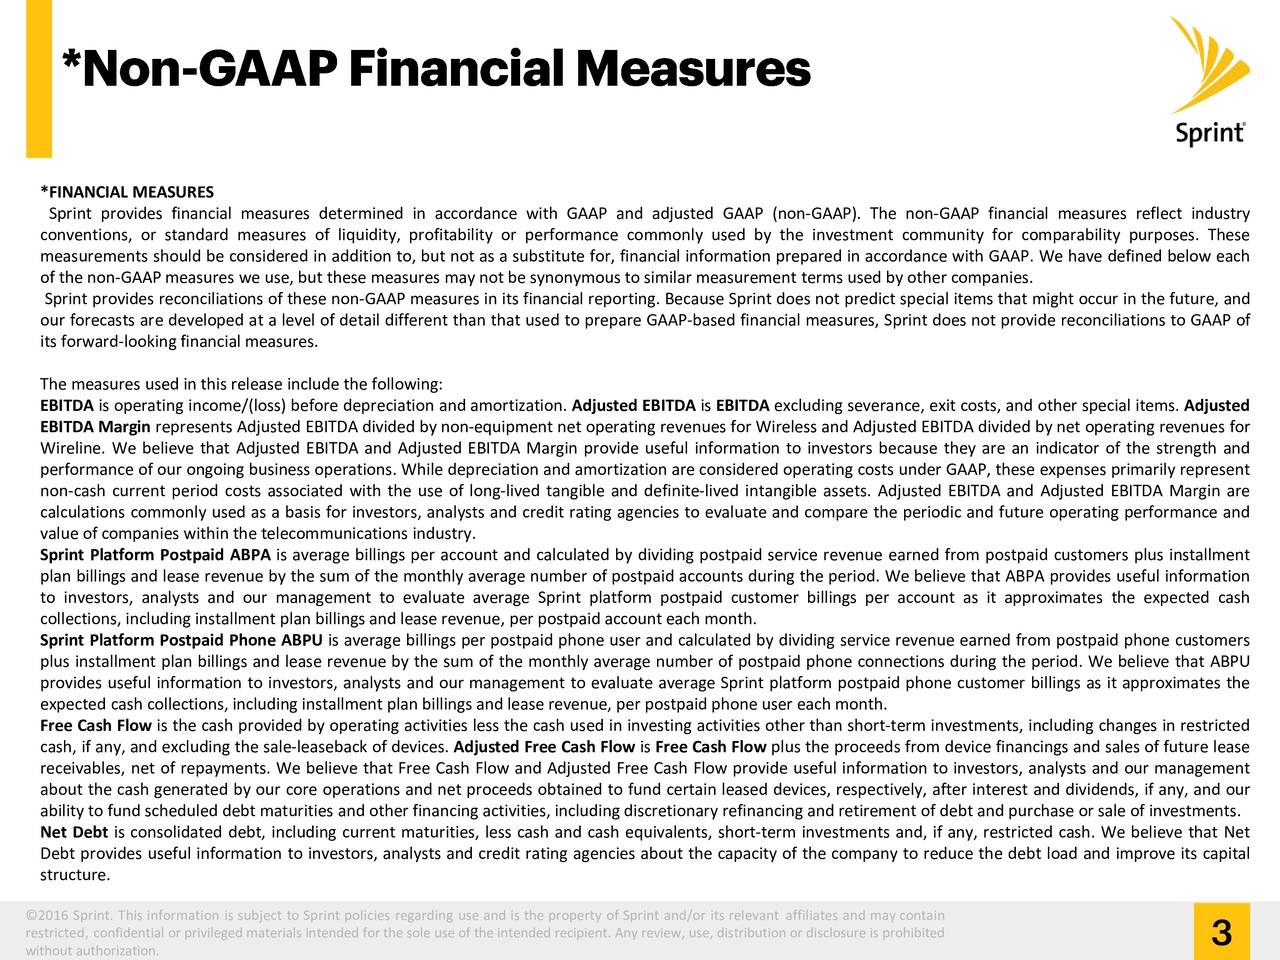 Sprint provides financial measures determined in accordance with GAAP and adjusted GAAP (non-GAAP). The non-GAAP financial measures reflect industry conventions, or standard measures of liquidity, profitability or performance commonly used by the investment community for comparability purposes. These measurements should be considered in addition to, but not as a substitute for, financial information prepared in accordance with GAAP. We have defined below each of the non-GAAP measures we use, but these measures may not be synonymous to similar measurement terms used by other companies. Sprint provides reconciliations of these non-GAAP measures in its financial reporting. Because Sprint does not predict special items that might occur in the future, and our forecasts are developed at a level of detail different than that used to prepare GAAP-based financial measures, Sprint does not provide reconciliations to GAAP of its forward-looking financial measures. The measures used in this release include the following: EBITDA is operating income/(loss) before depreciation and amortization. Adjusted EBITDA is EBITDA excluding severance, exit costs, and other special items. Adjusted EBITDA Margin represents Adjusted EBITDA divided by non-equipment net operating revenues for Wireless and Adjusted EBITDA divided by net operating revenues for Wireline. We believe that Adjusted EBITDA and Adjusted EBITDA Margin provide useful information to investors because they are an indicator of the strength and performance of our ongoing business operations. While depreciation and amortization are considered operating costs under GAAP, these expenses primarily represent non-cash current period costs associated with the use of long-lived tangible and definite-lived intangible assets. Adjusted EBITDA and Adjusted EBITDA Margin are calculations commonly used as a basis for investors, analysts and credit rating agencies to evaluate and compare the periodic and future operating performance and valu